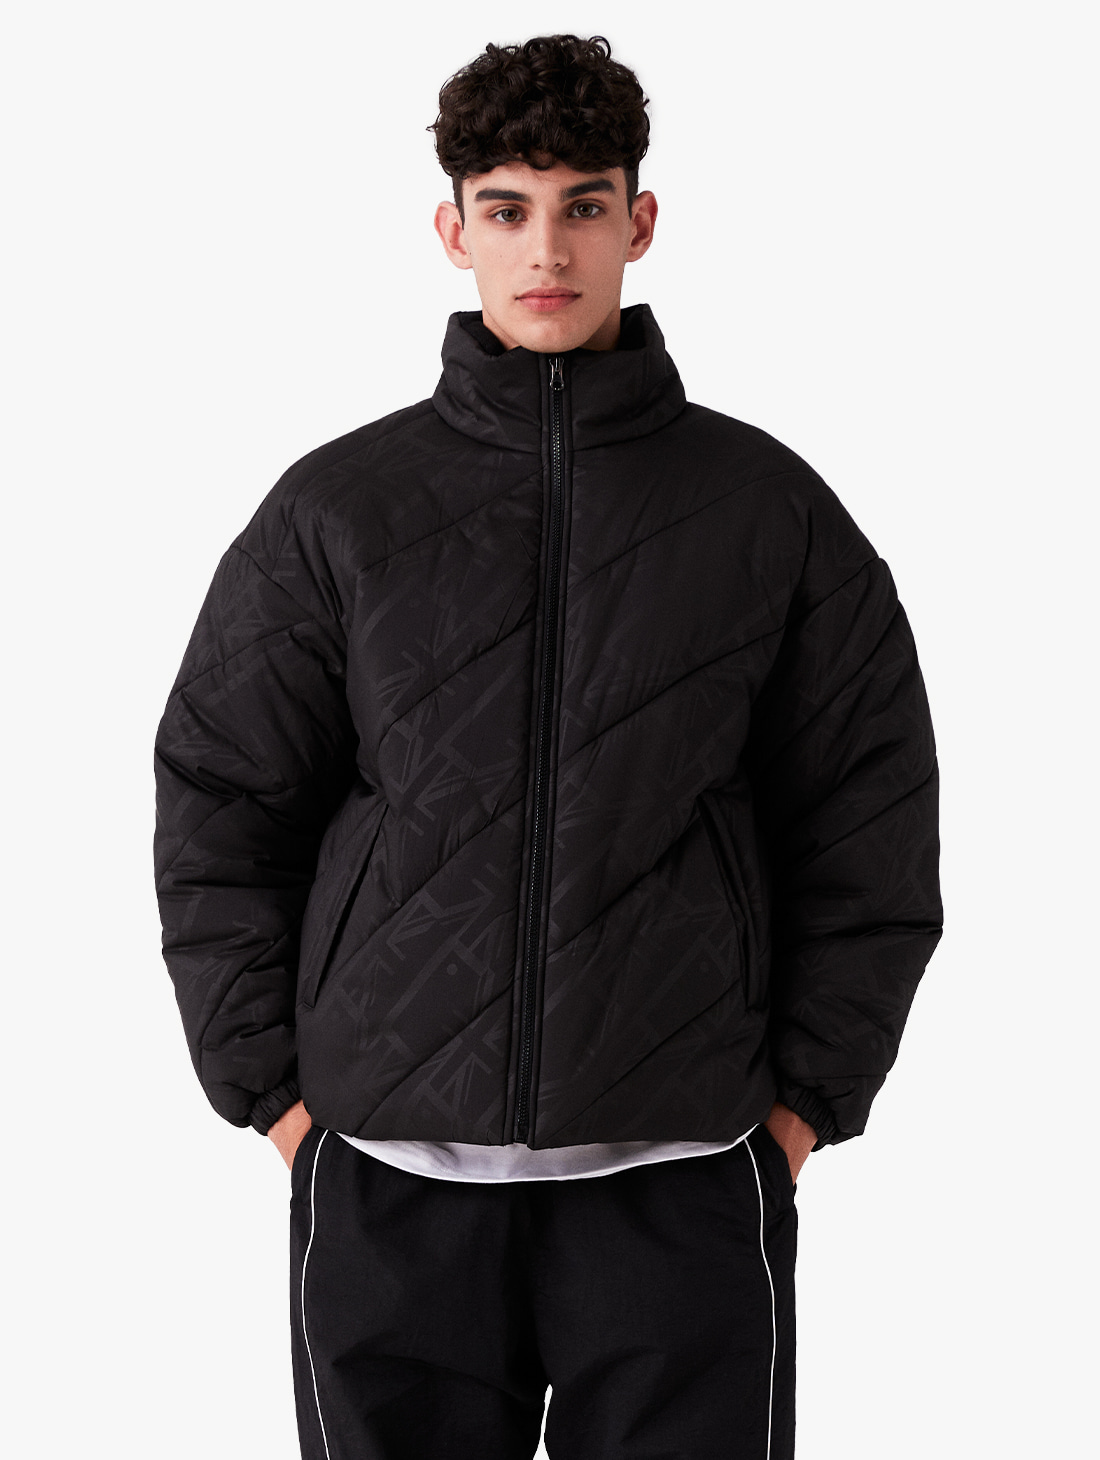 [PRE-ORDER 10% OFF] WWFC DIAGONAL EMBO PADDED JACKET